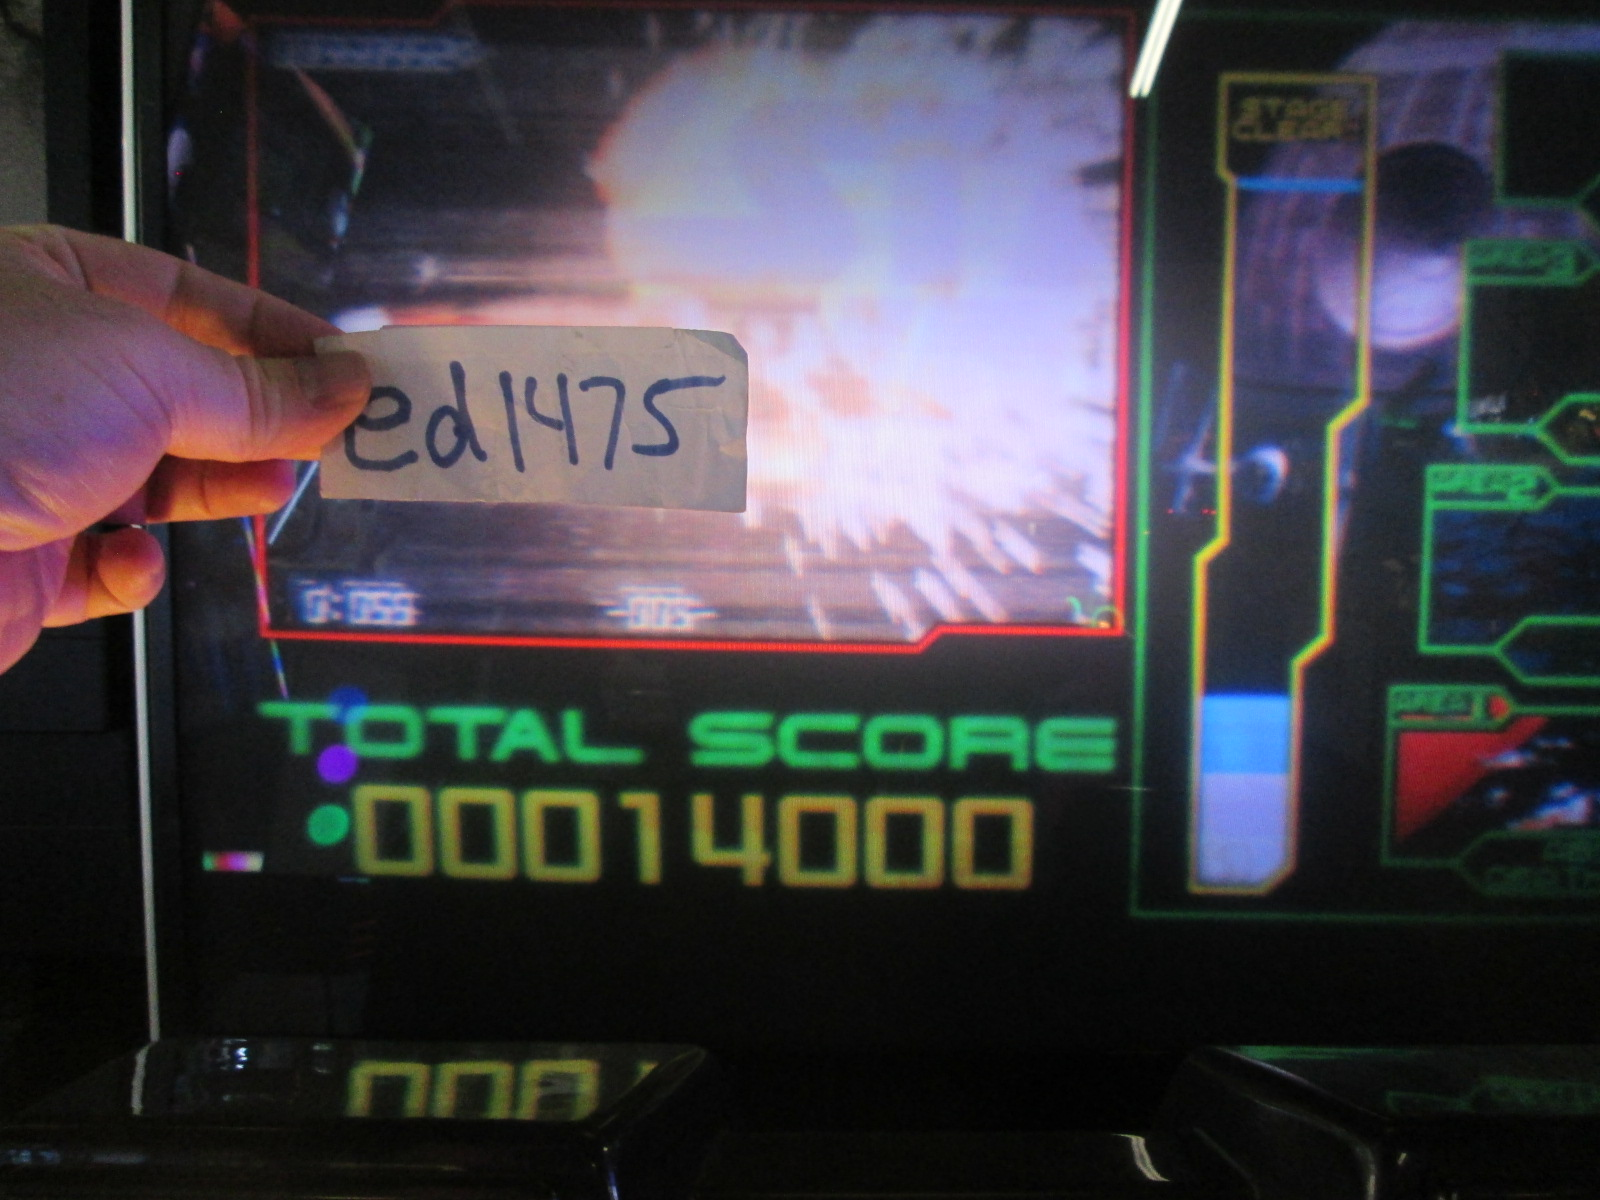 ed1475: Star Wars Trilogy Arcade (Arcade) 14,000 points on 2016-08-30 19:00:46